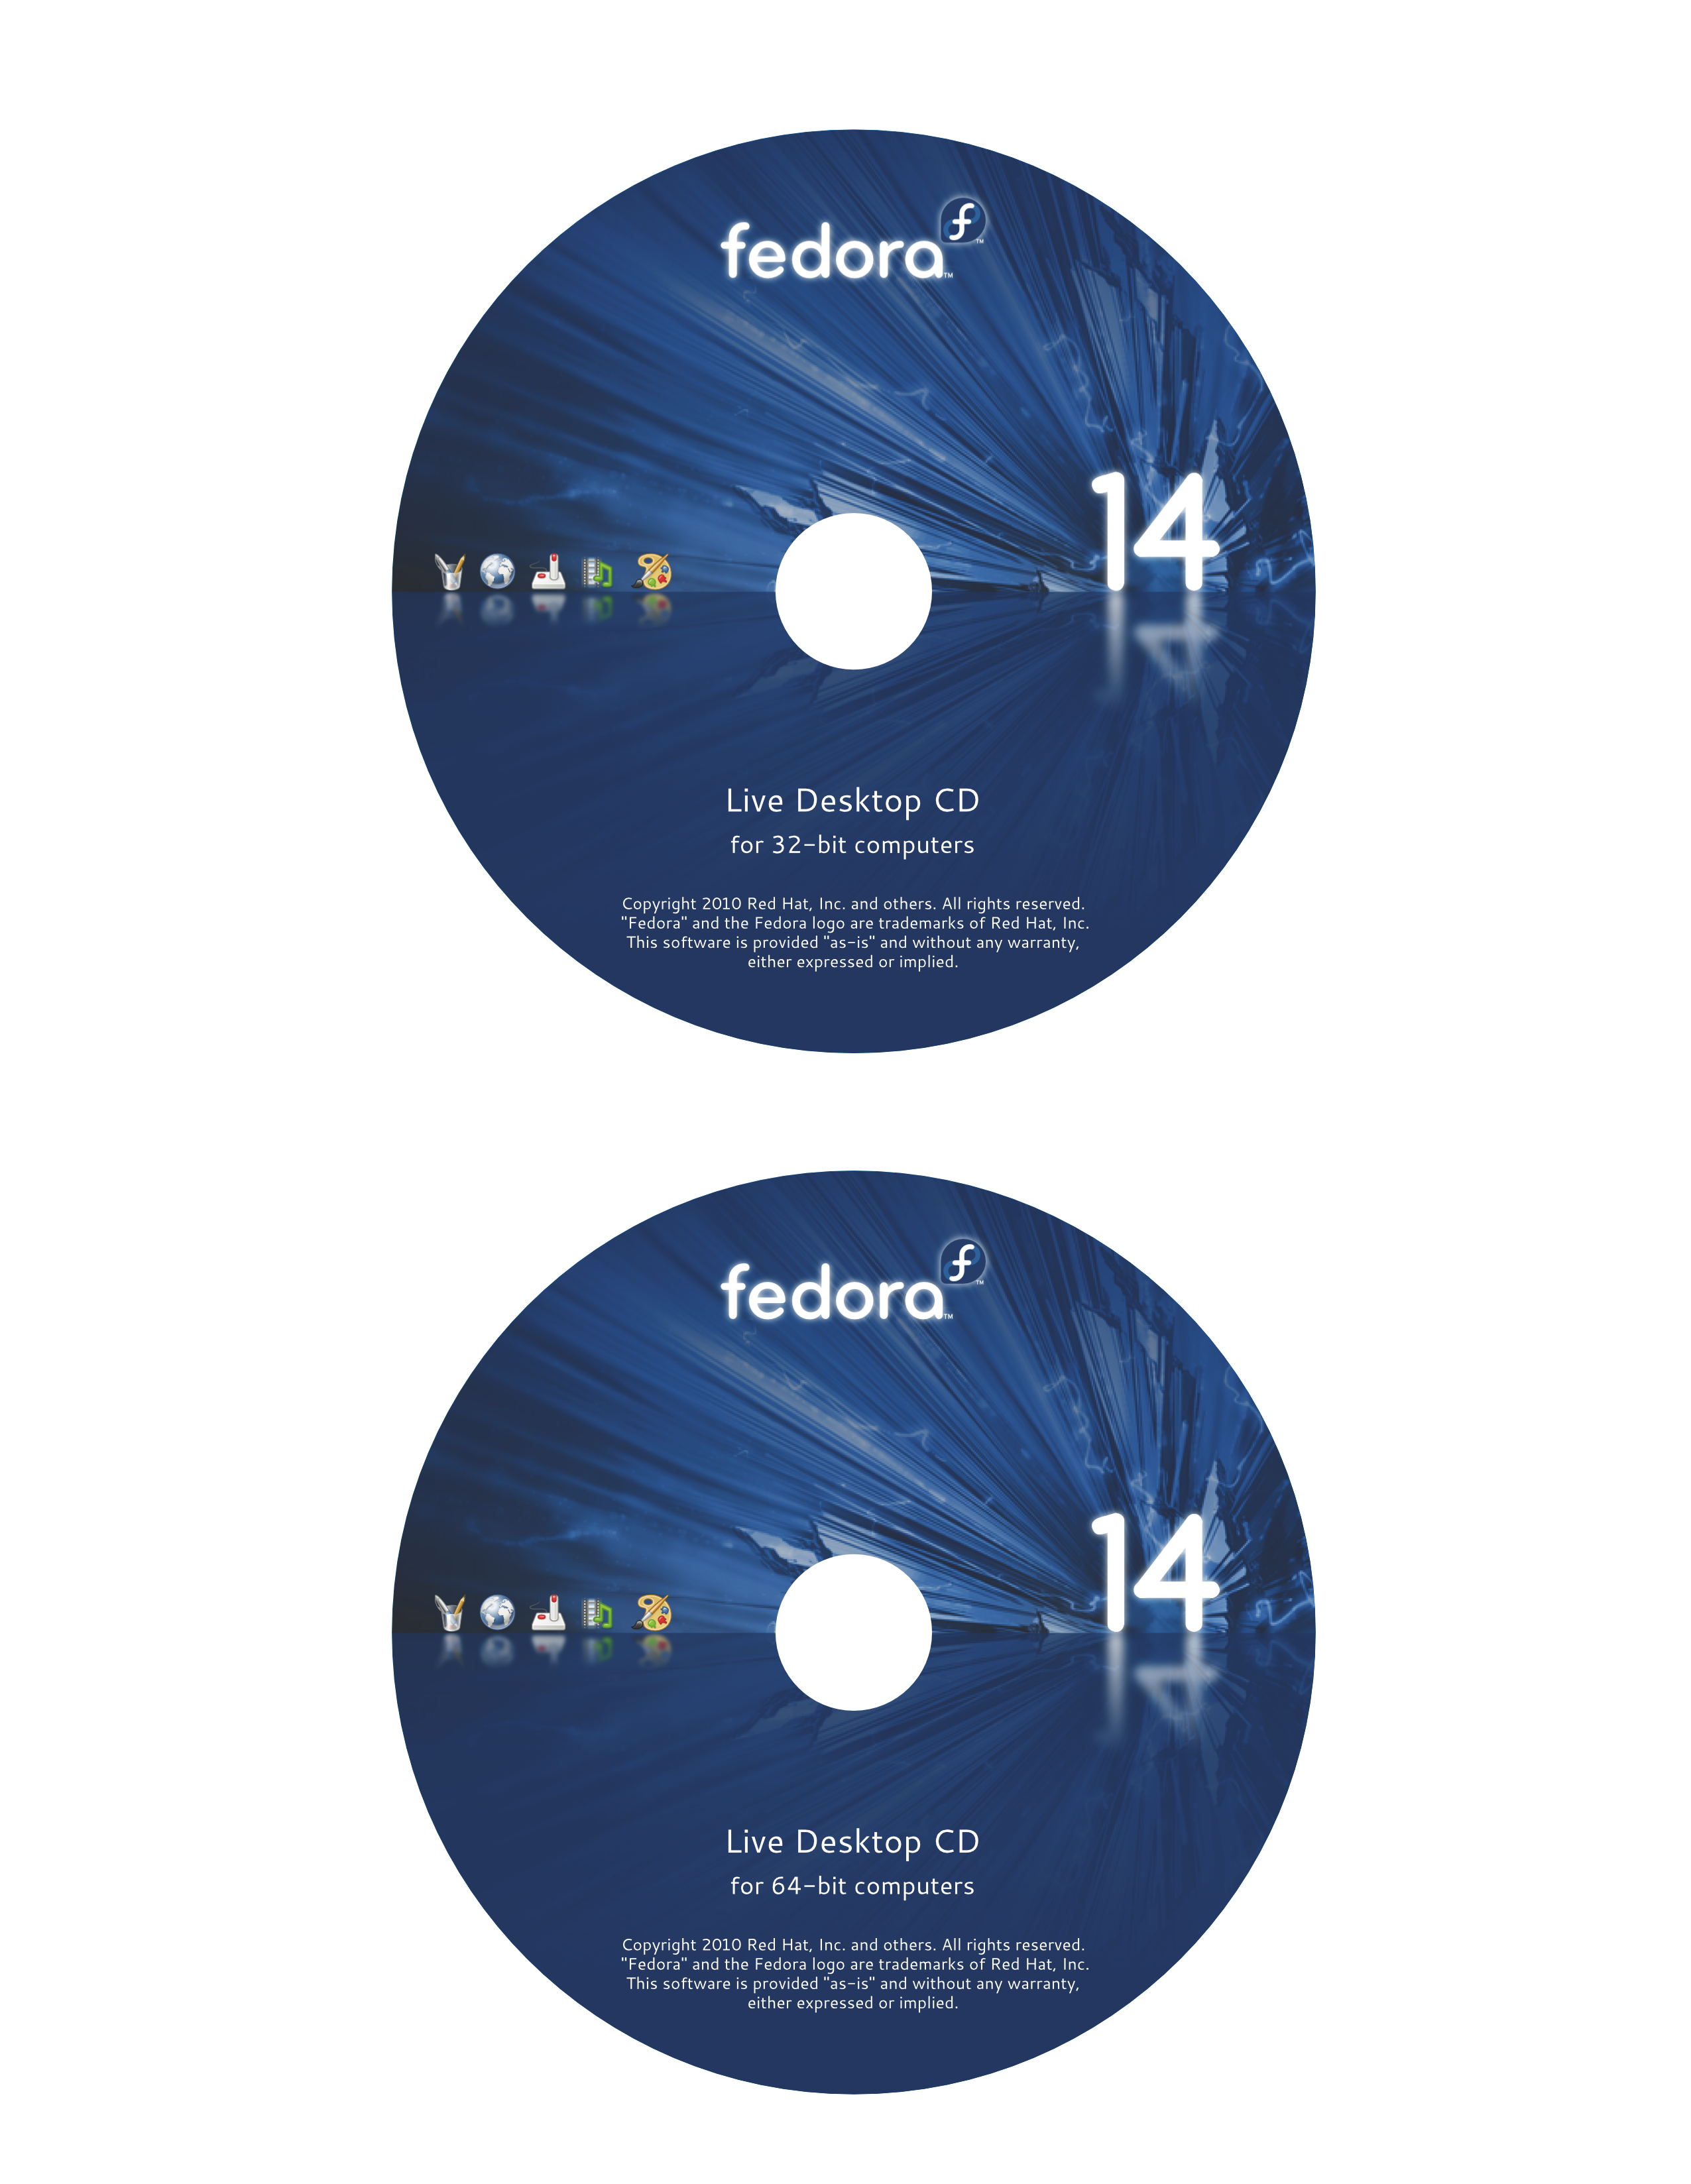 Fedora-14-livemedia-label-fc.png